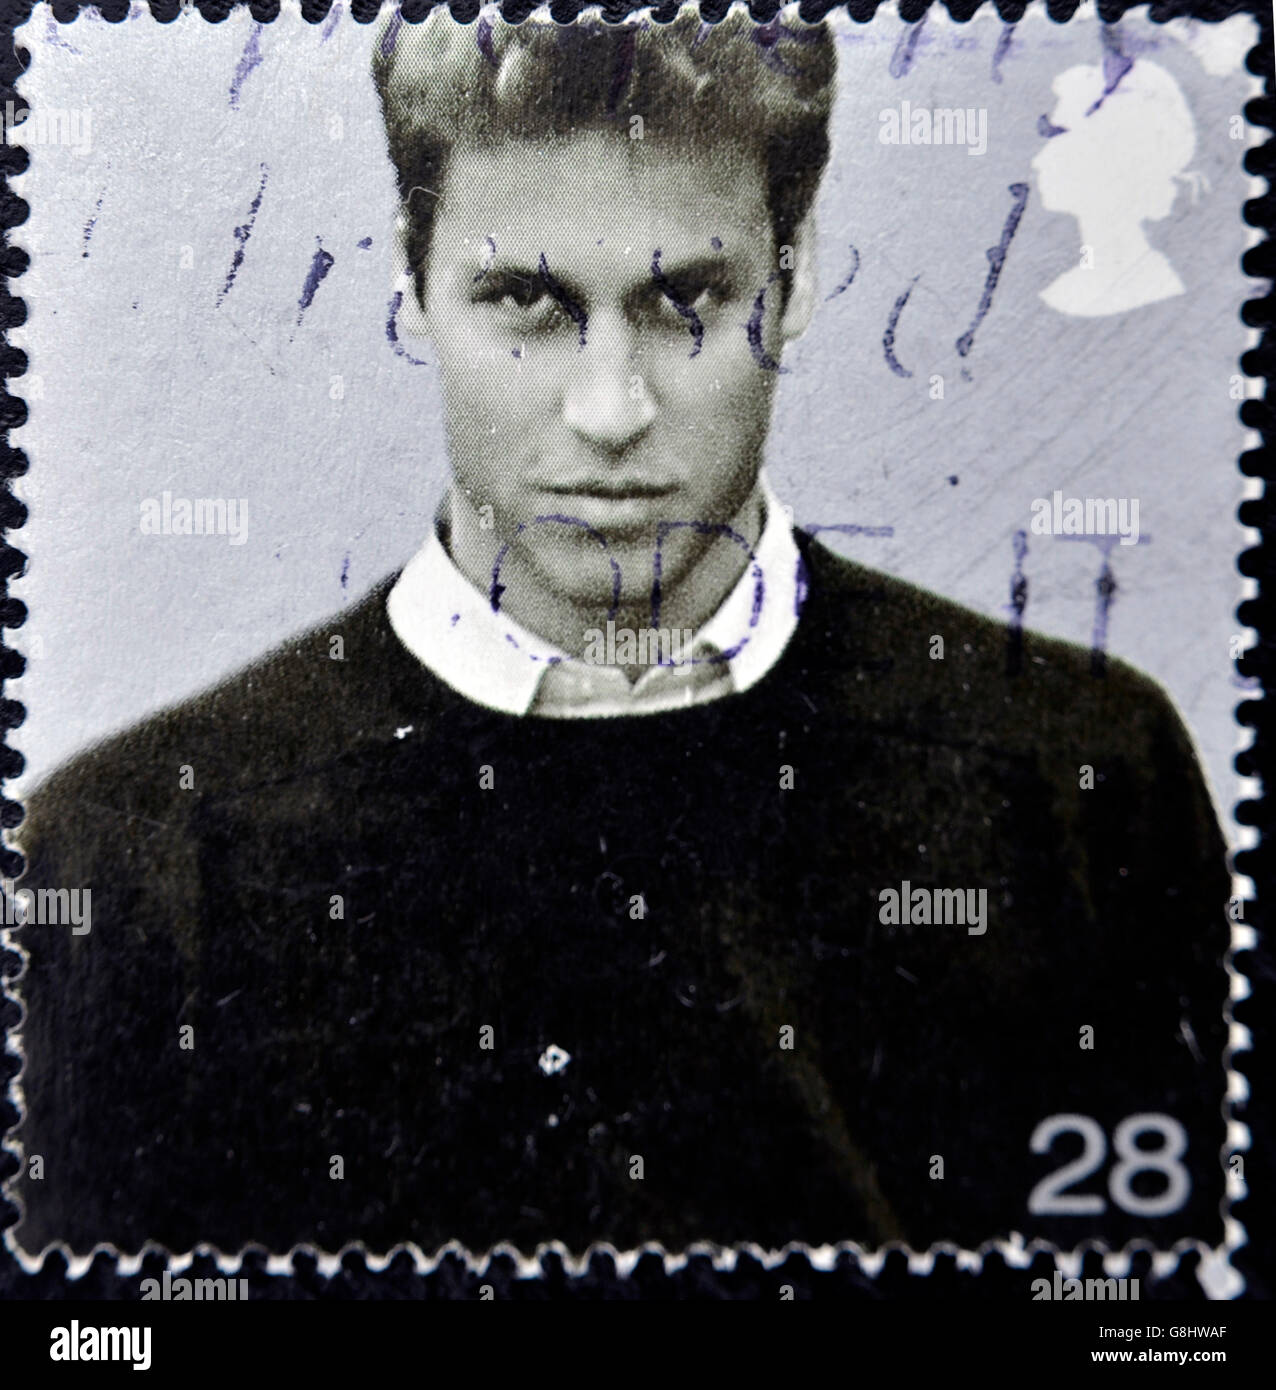 UNITED KINGDOM - CIRCA 2003: A stamp printed in Great Britain shows Prince William of Wales, circa 2003 Stock Photo